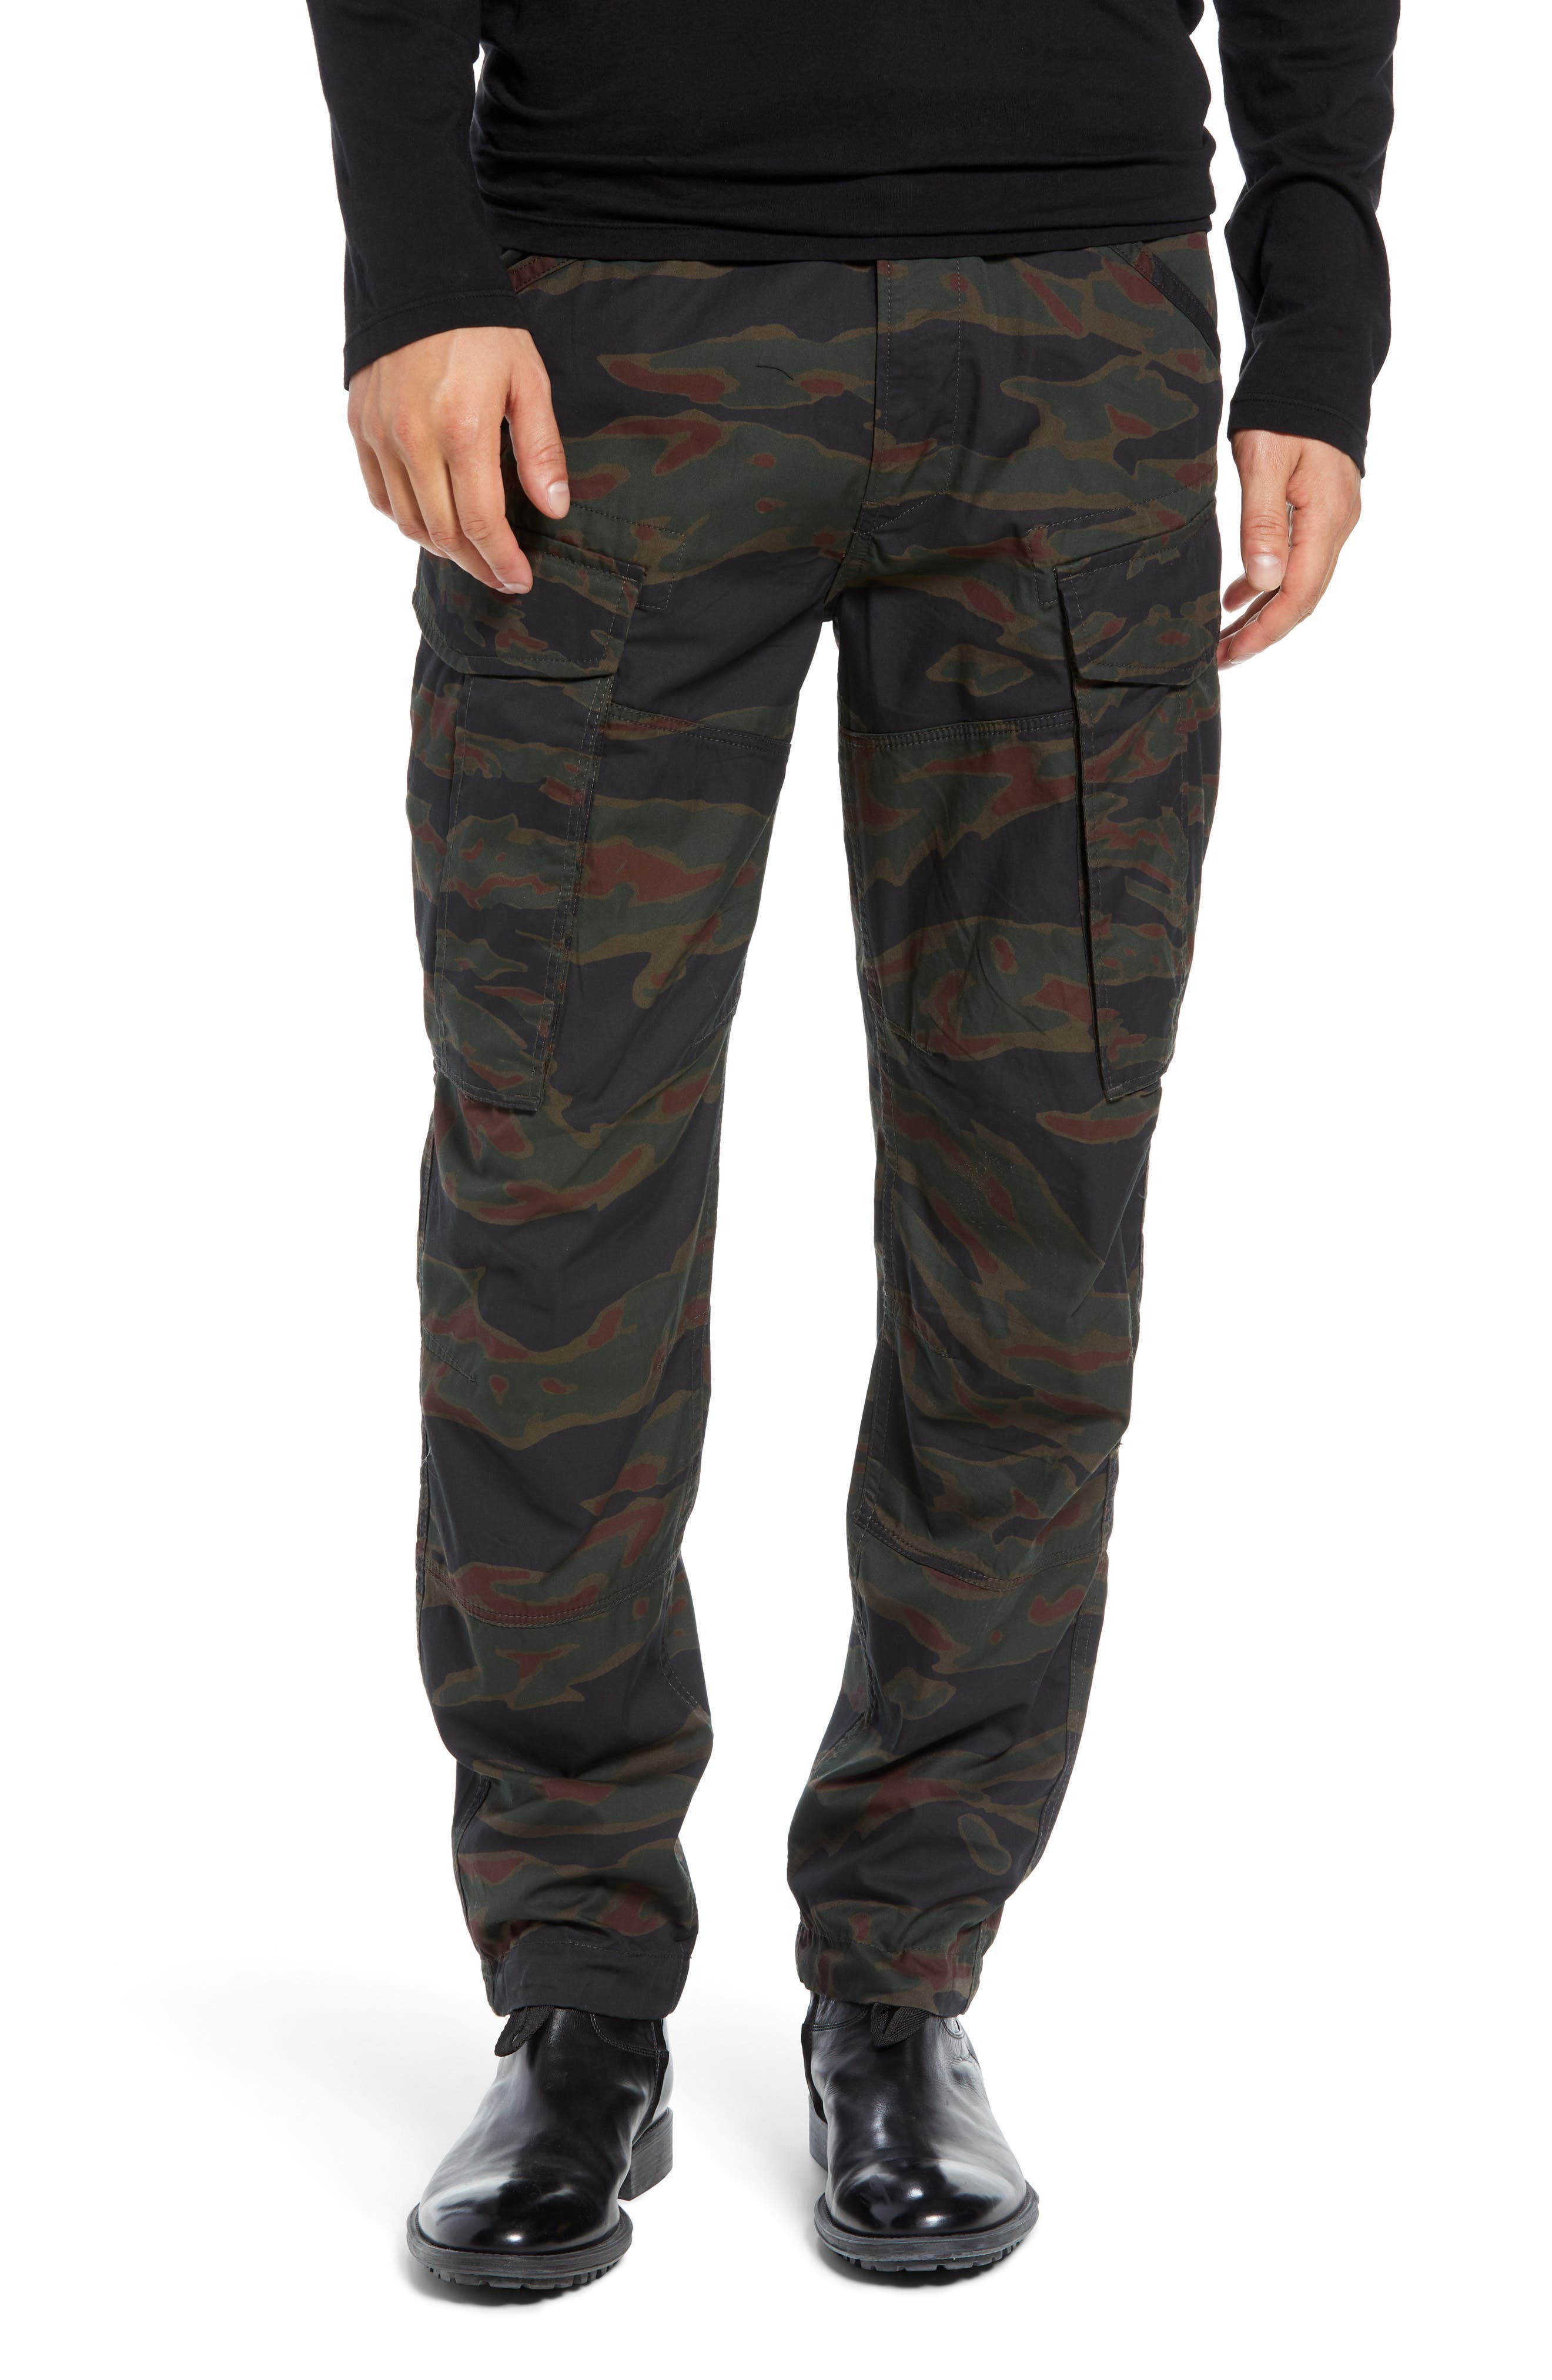 G-Star Raw Rovic Tapered Cargo Pants, Green